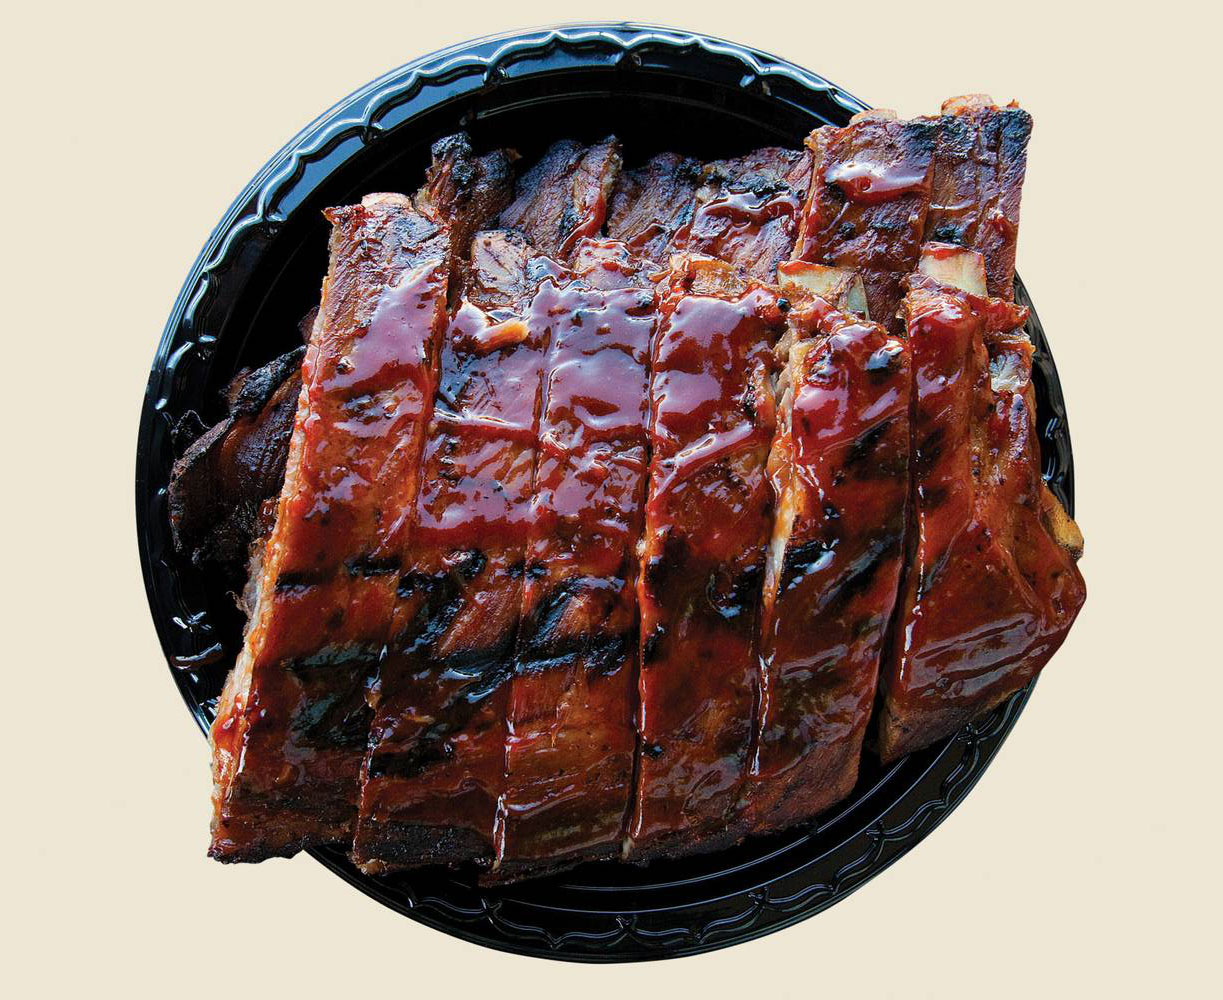 Baby back ribs at TC's Rib Crib, photo courtesy of Las Vegas Weekly